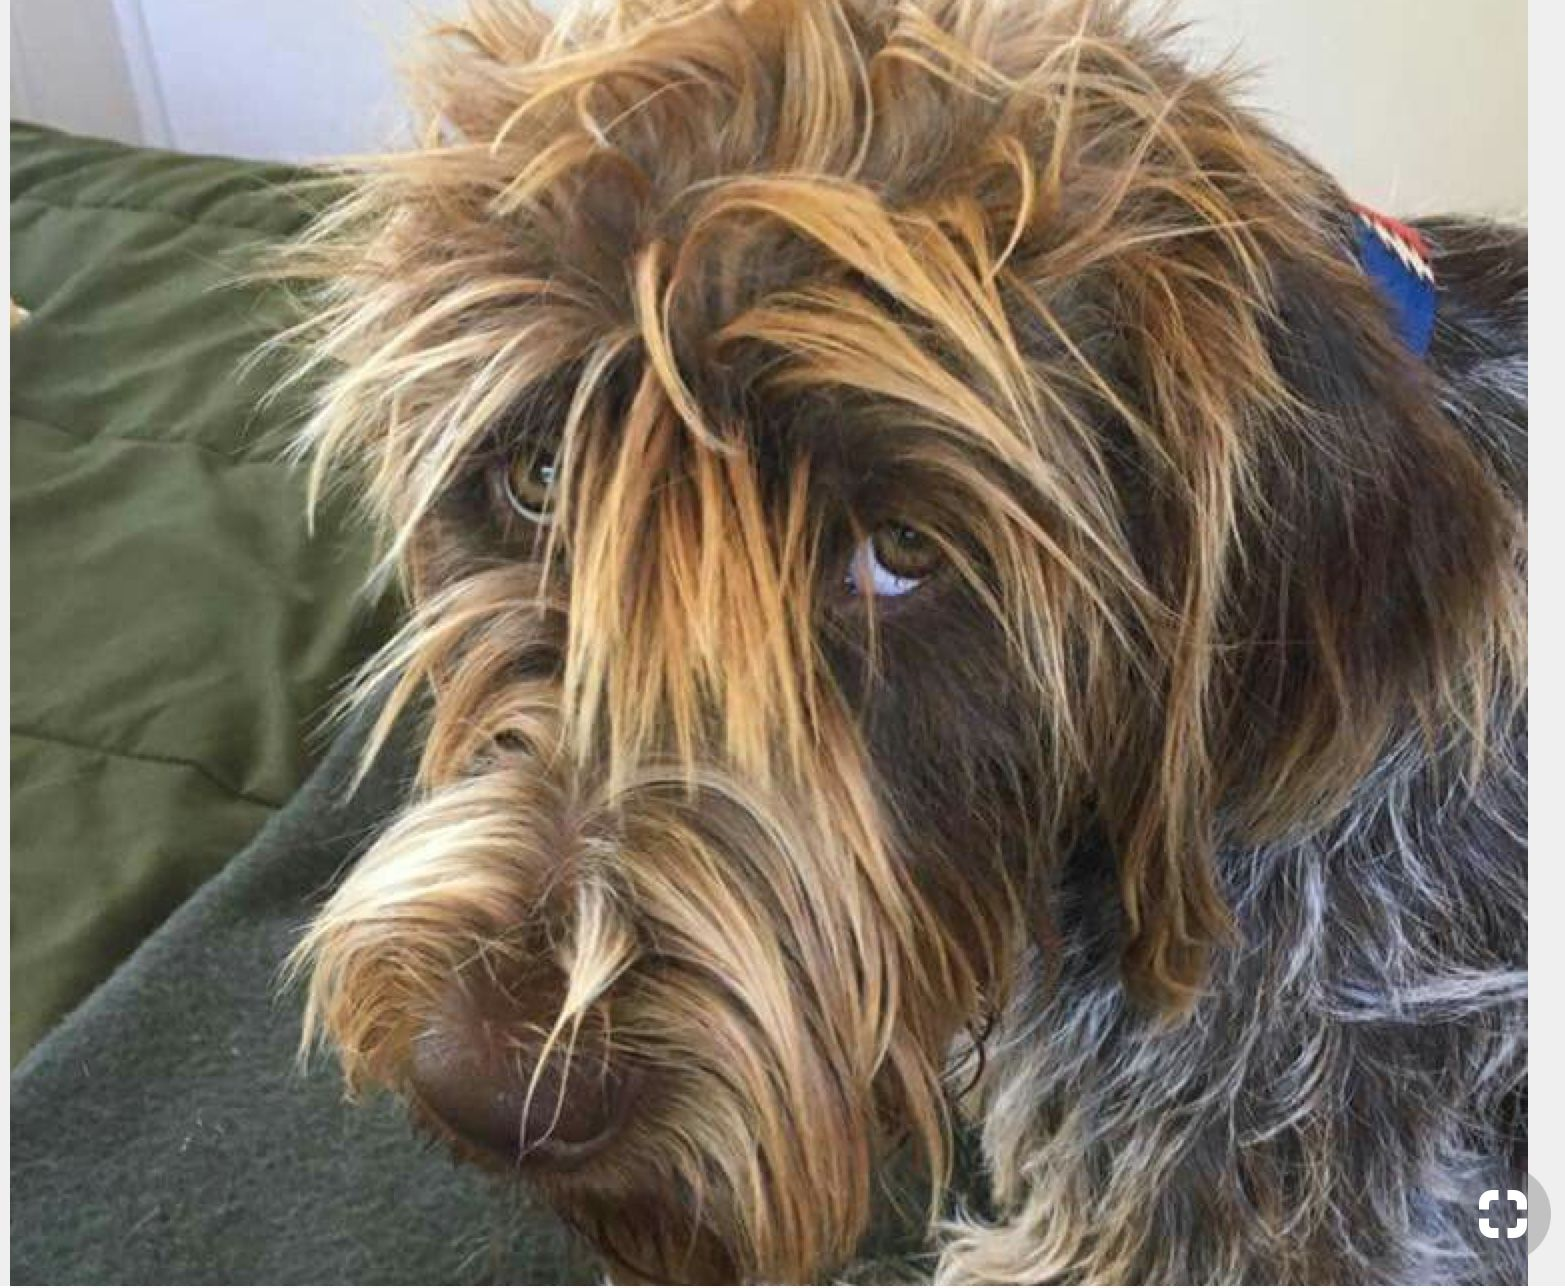 Pin By Ryan On Family Dog Ideas Griffon Dog Hunting Dogs Dogs